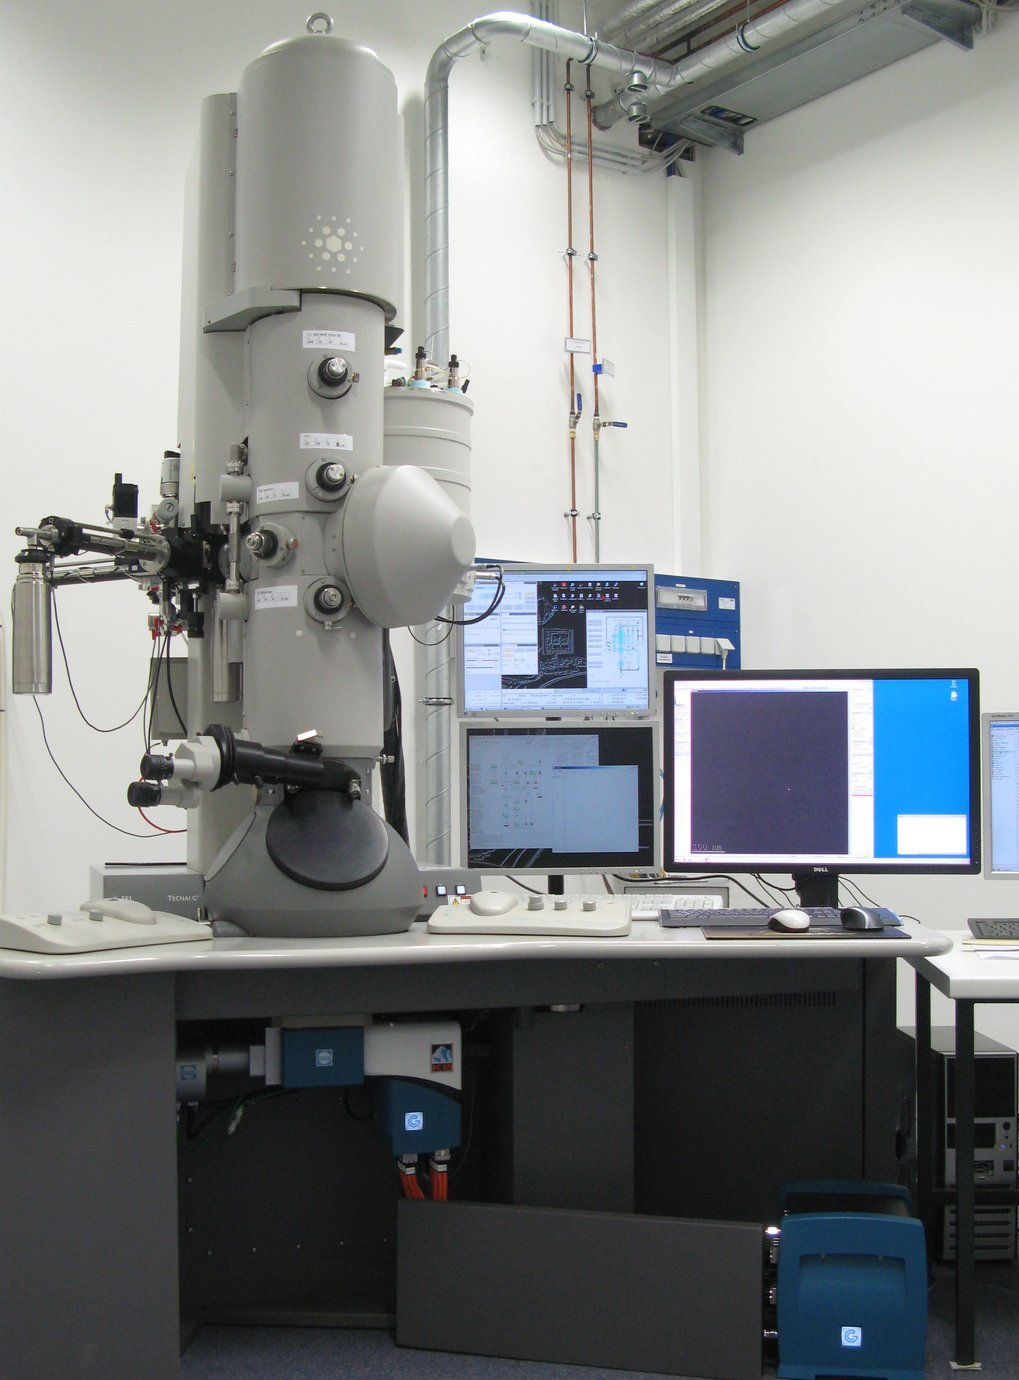 "The microscopy and cryo-electron microscopy service group now combines the former microscopy group headed by Dr. Rudi Lurz from 1978 until his retirement in 2012 and the cryo-electron microscopy group which was installed in 2004 within the framework of Berlin-Brandenburg-wide research consortia ""UltraStructure Network"" (USN) and ""Anwenderzentrum"" (AWZ). Our group provides a broad range of imaging techniques for all departments and OWL research groups of the institute."